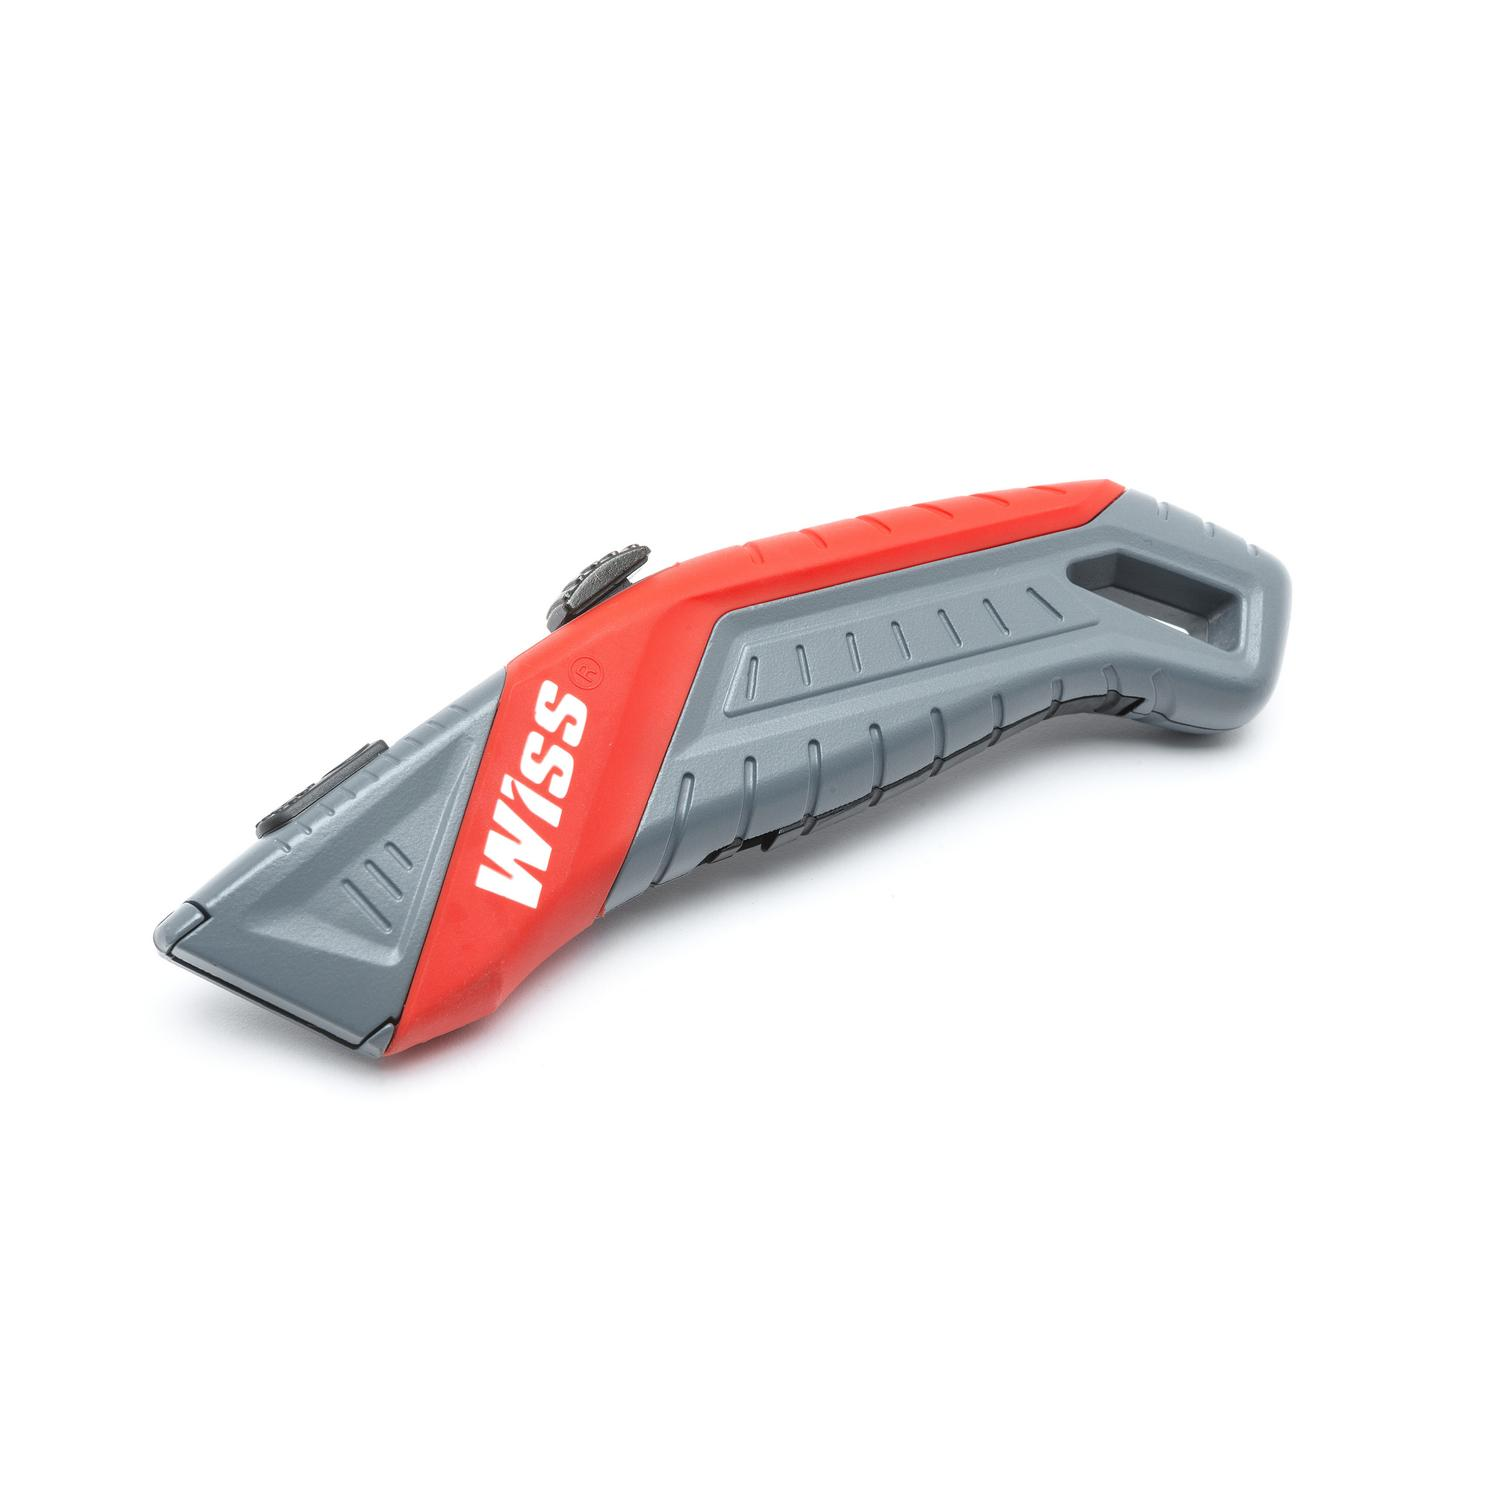 Auto-Retracting Safety Utility Knife